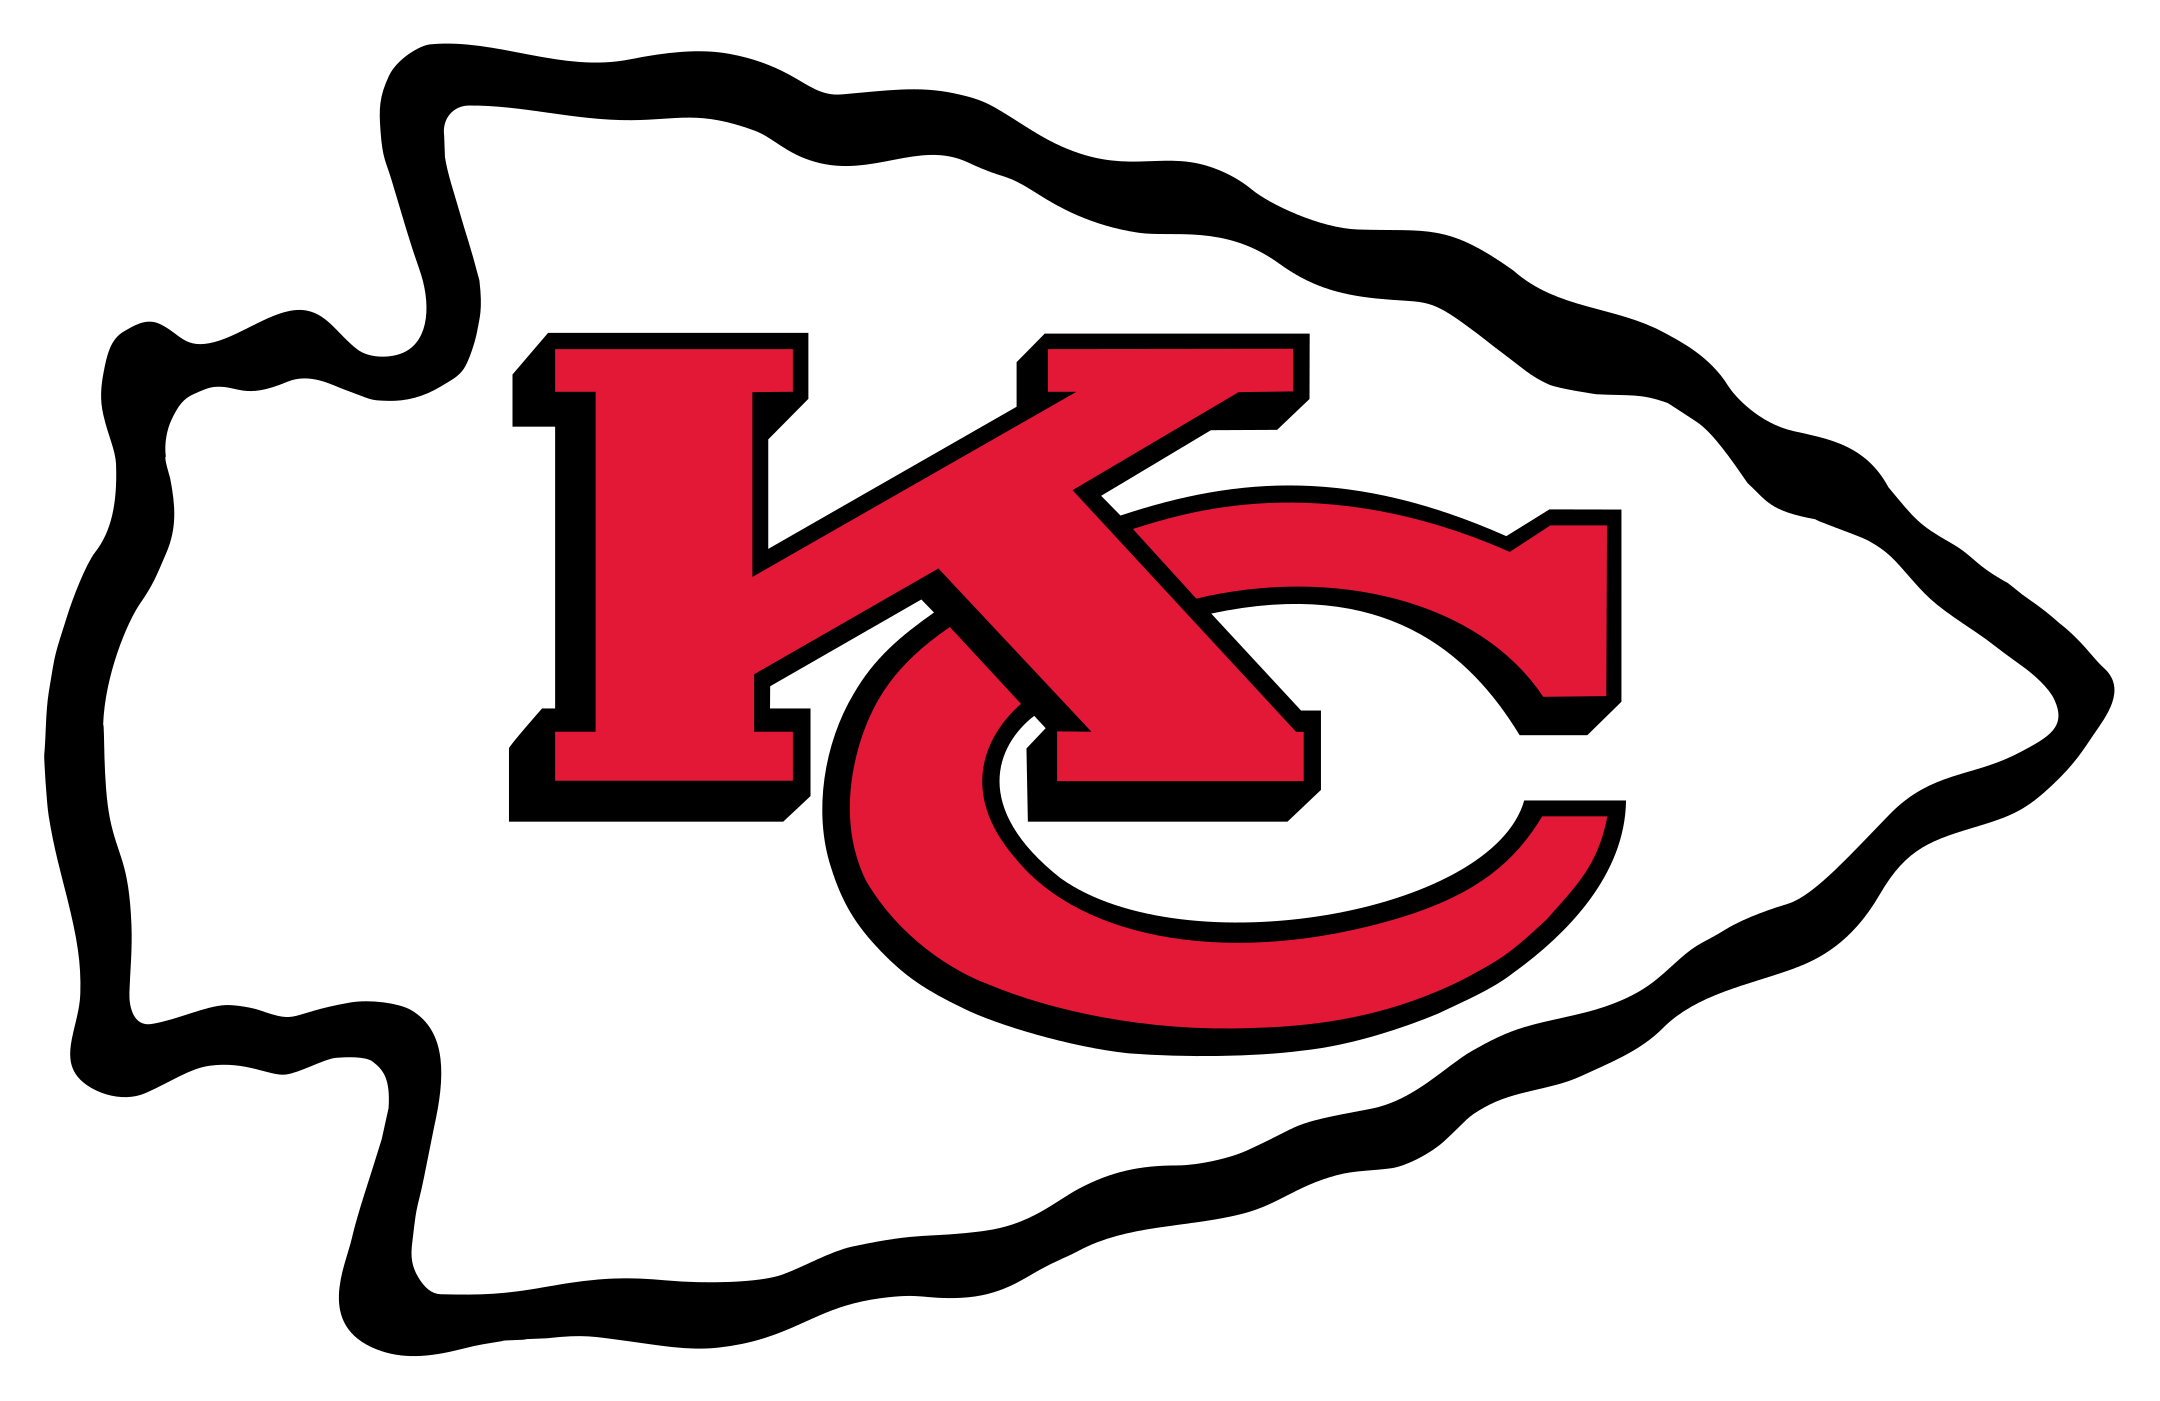 kansas city chiefs logo 1 - Kansas City Chiefs Logo